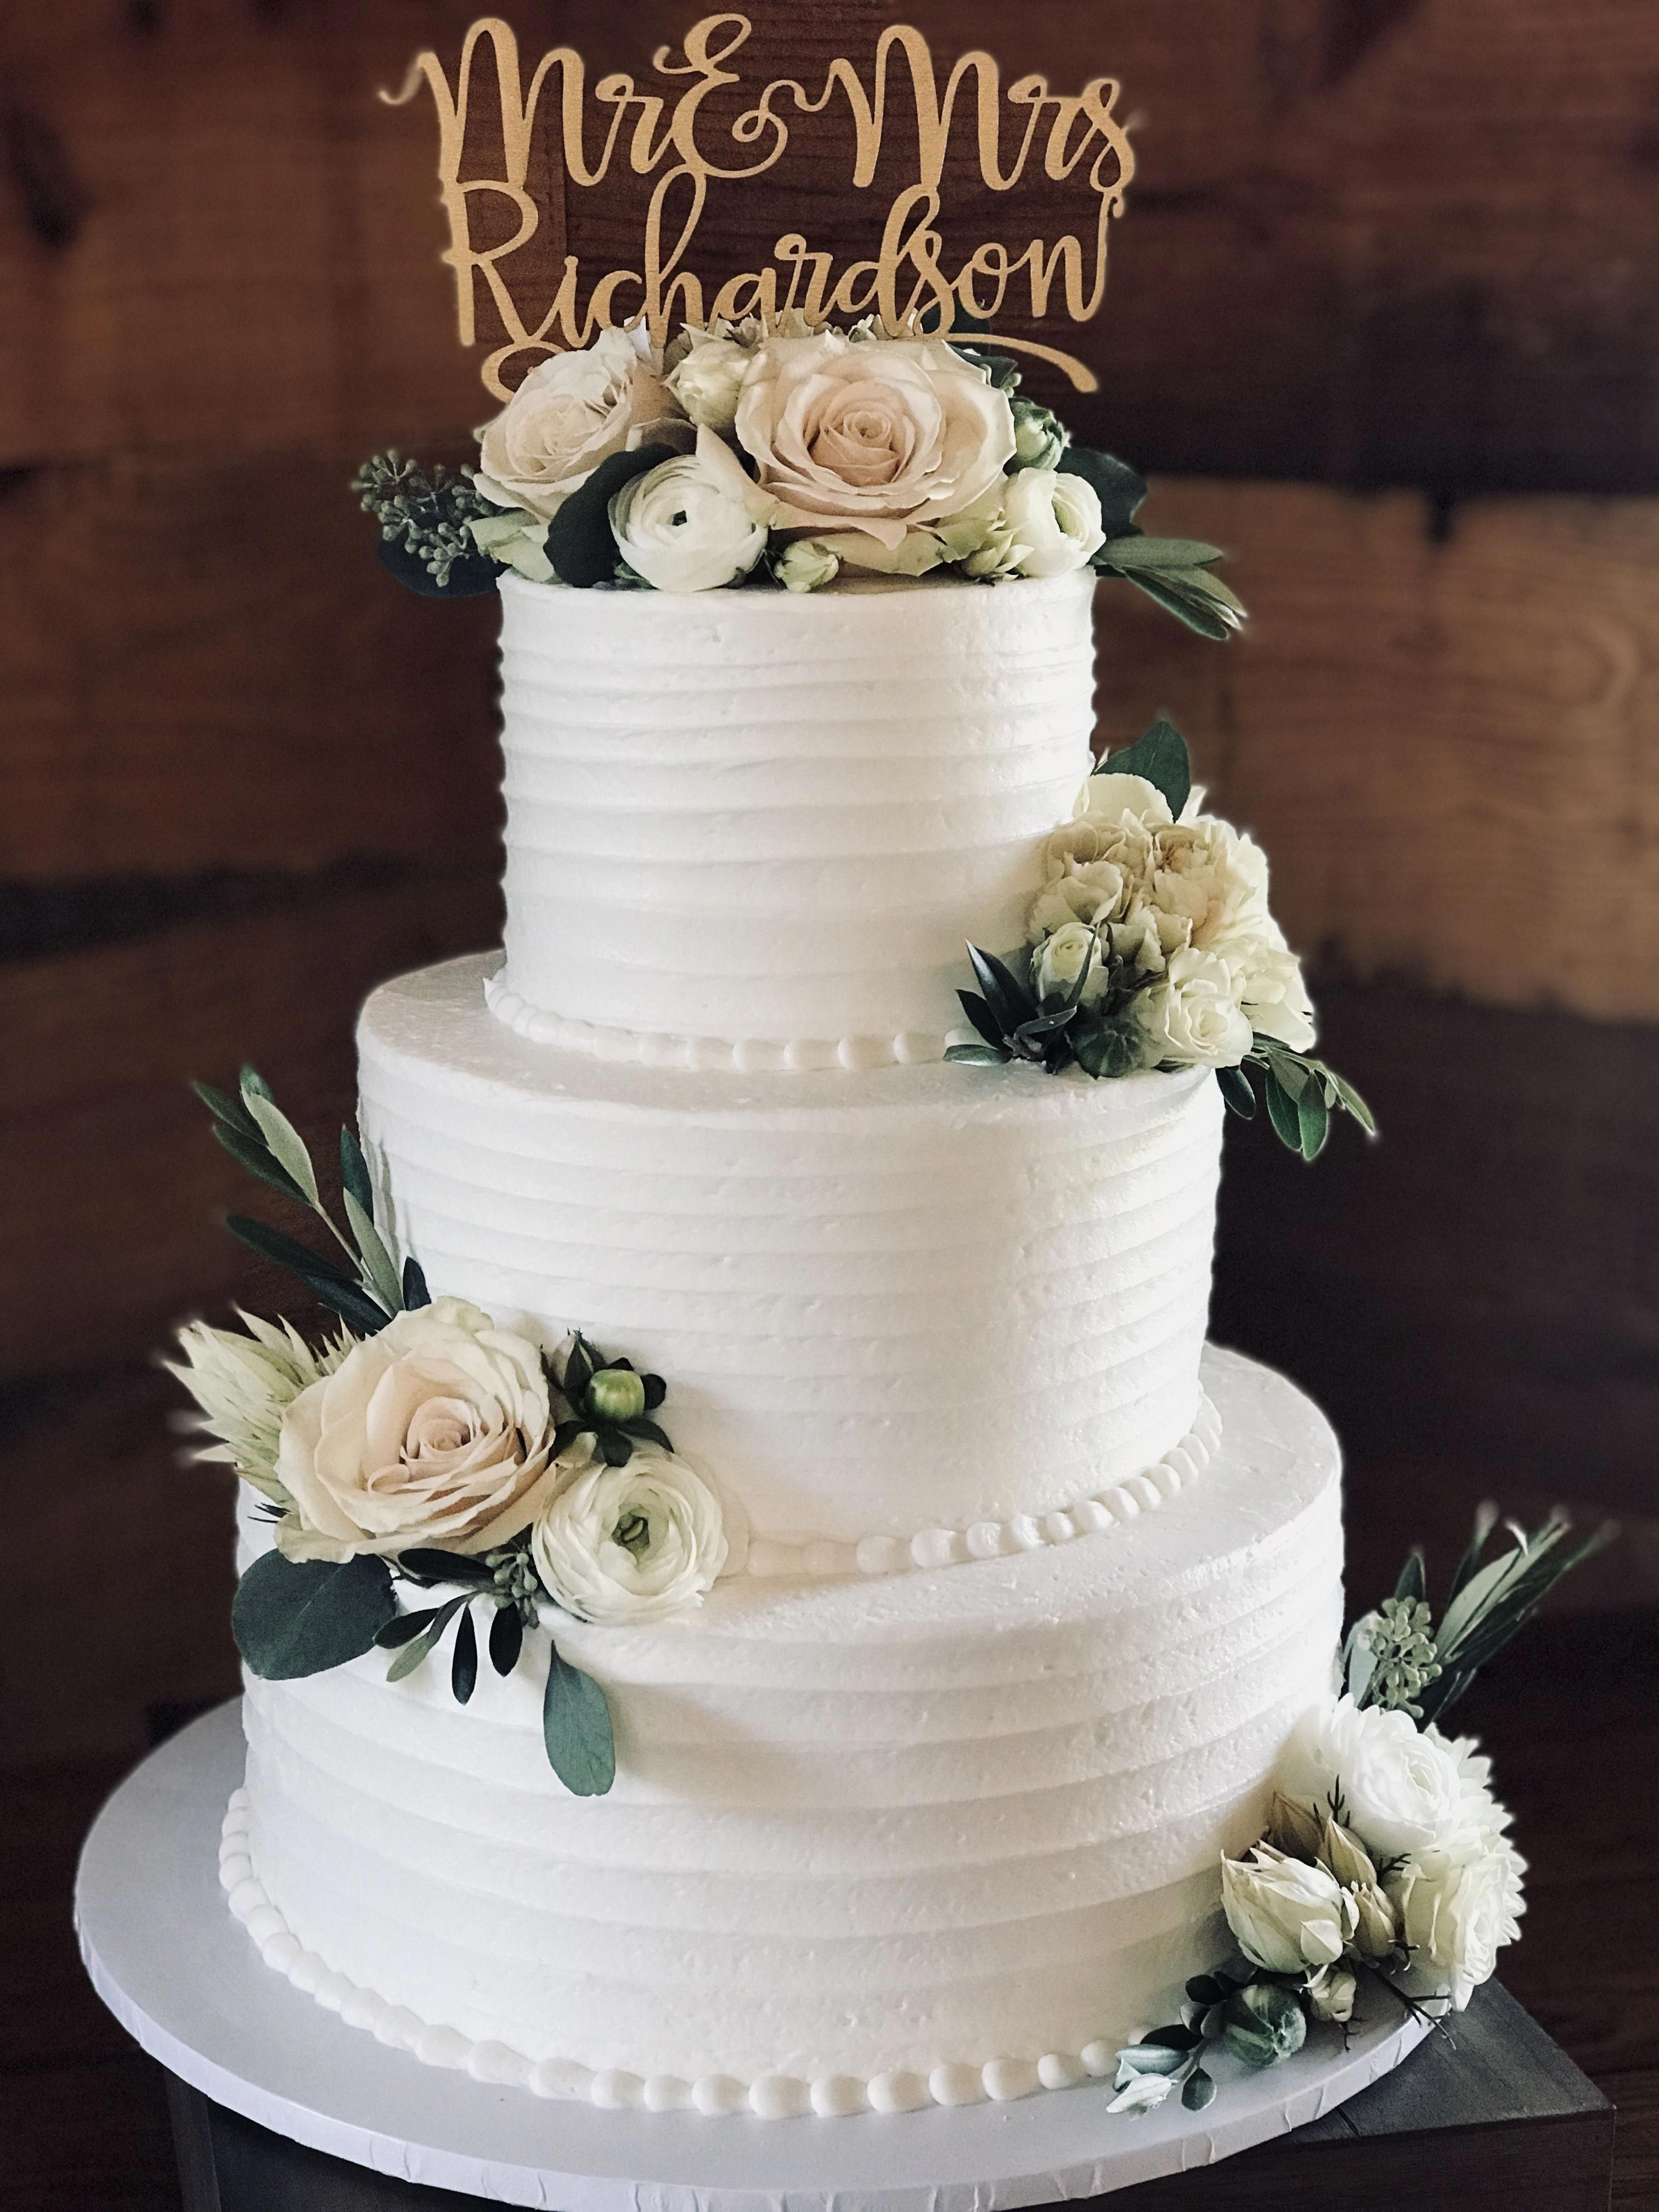 Wedding Cakes A Totally Must Read Simple Cake Presentation Image Number 5597174193 Truly I Simple Wedding Cake Floral Wedding Cakes Beautiful Wedding Cakes